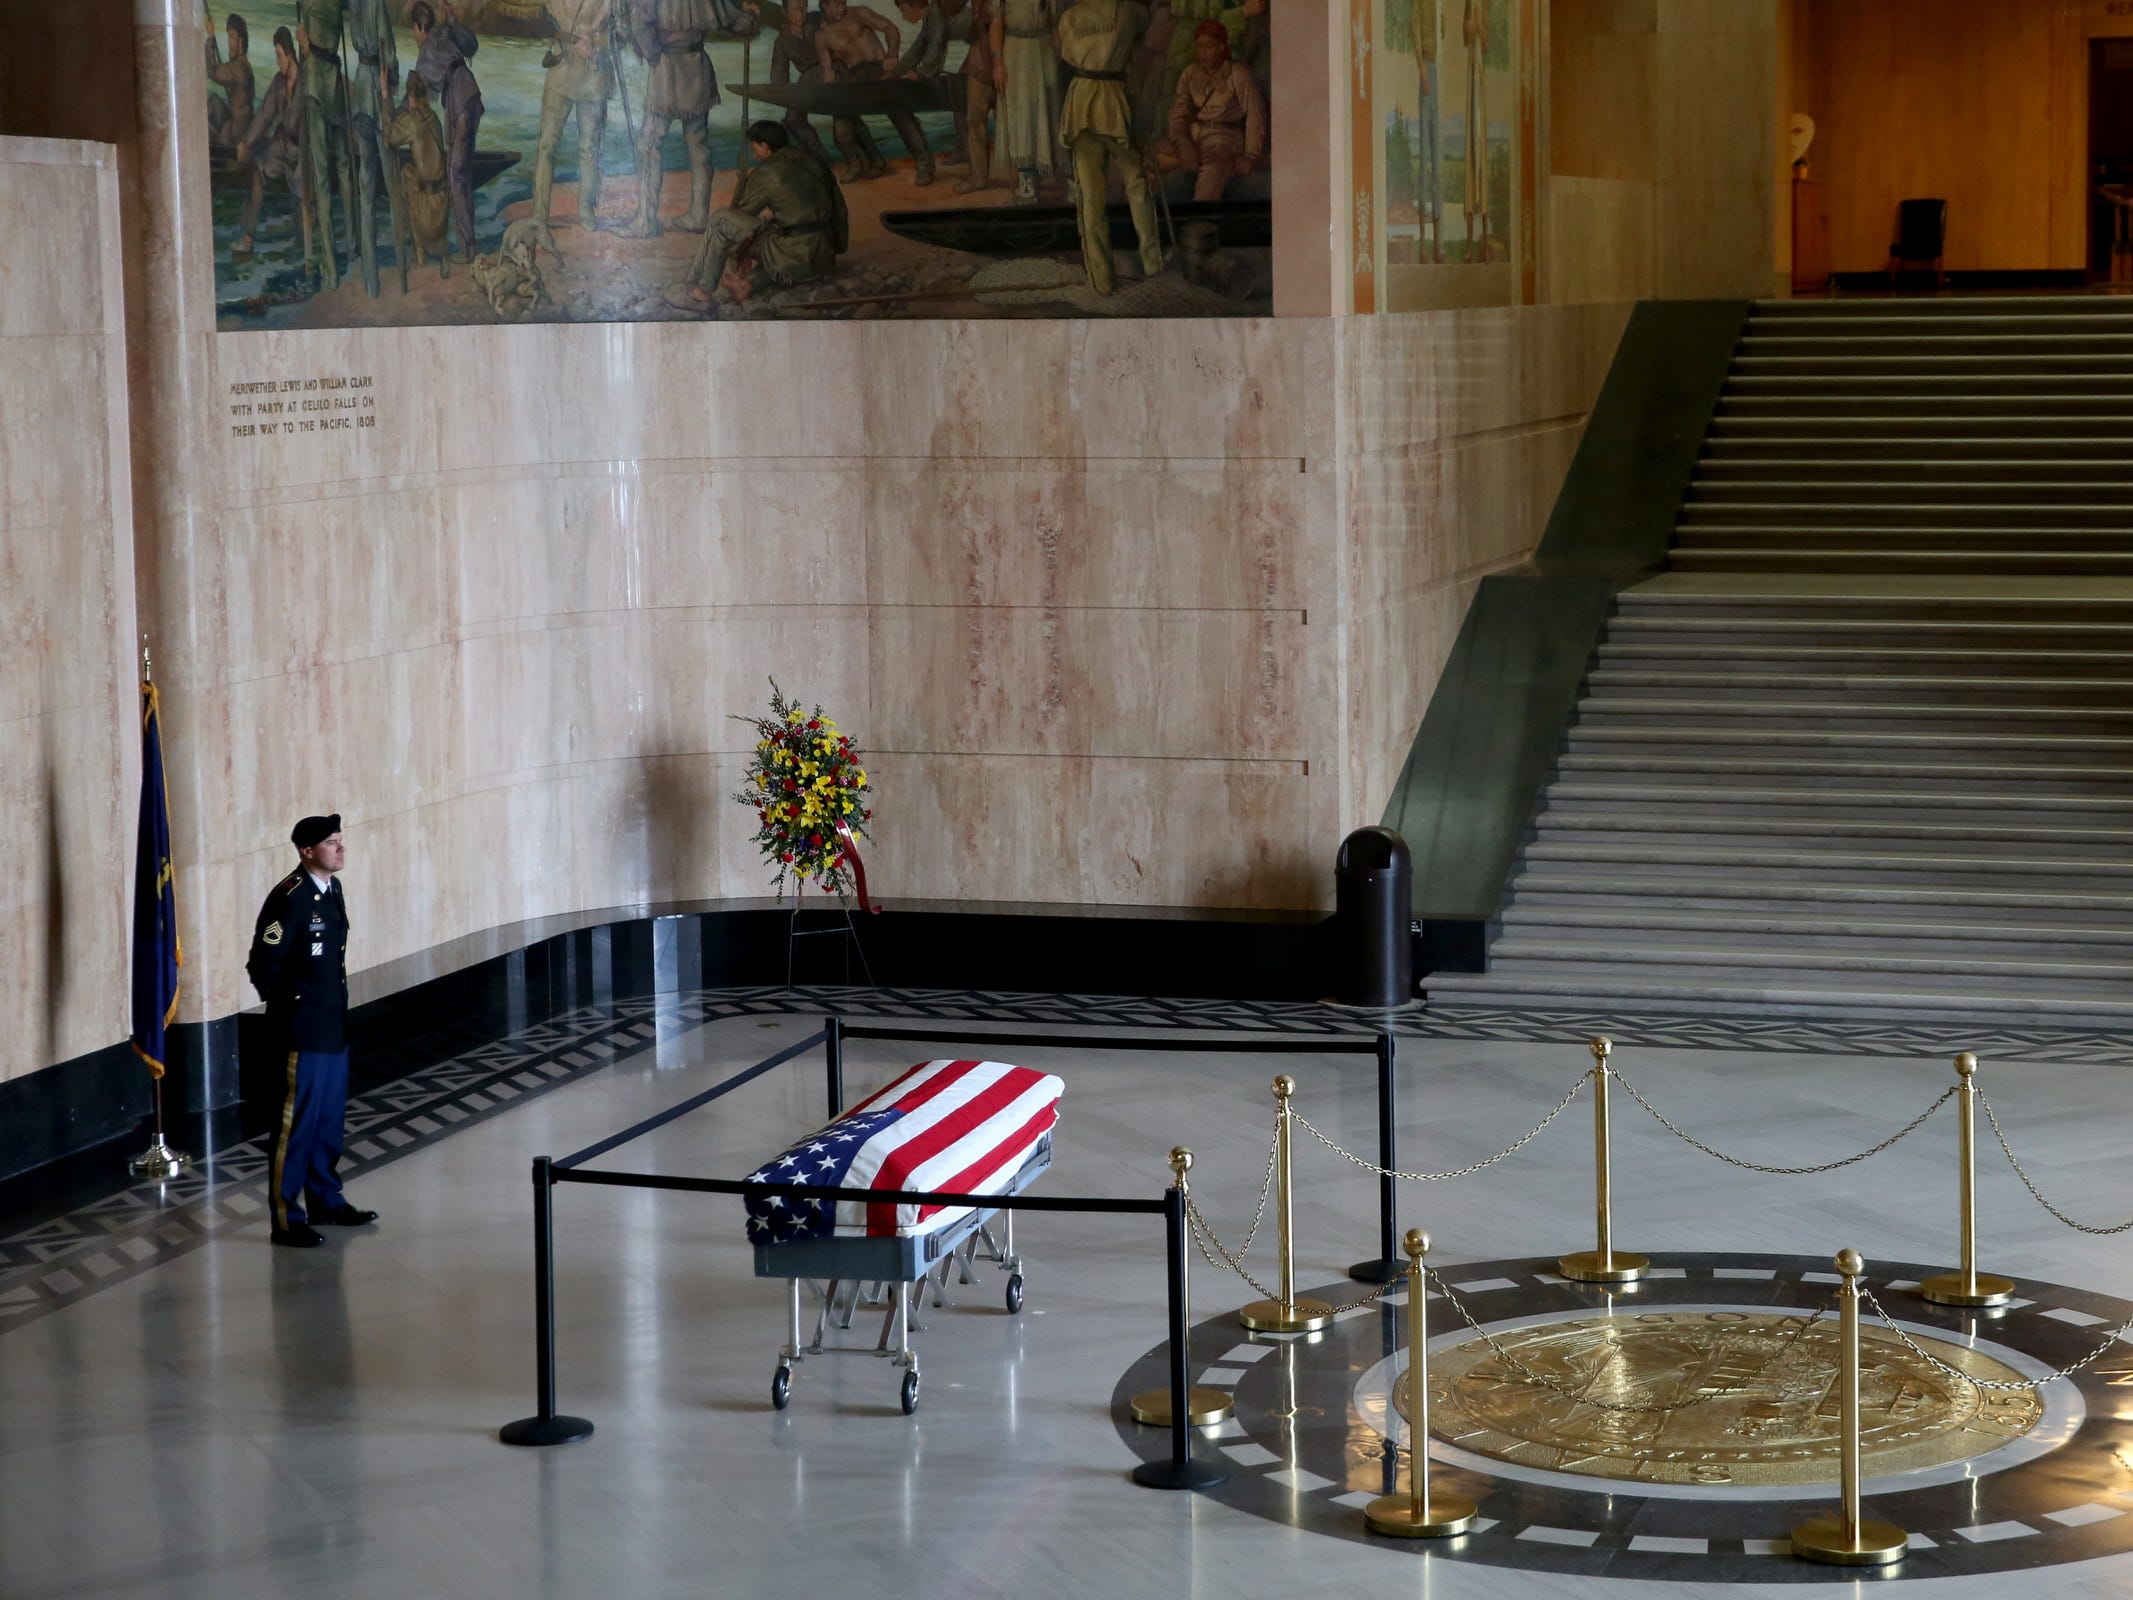 A military member guards the casket of Secretary of State Dennis Richardson in the rotunda at the Oregon State Capitol in Salem on Wednesday, March 6, 2019.